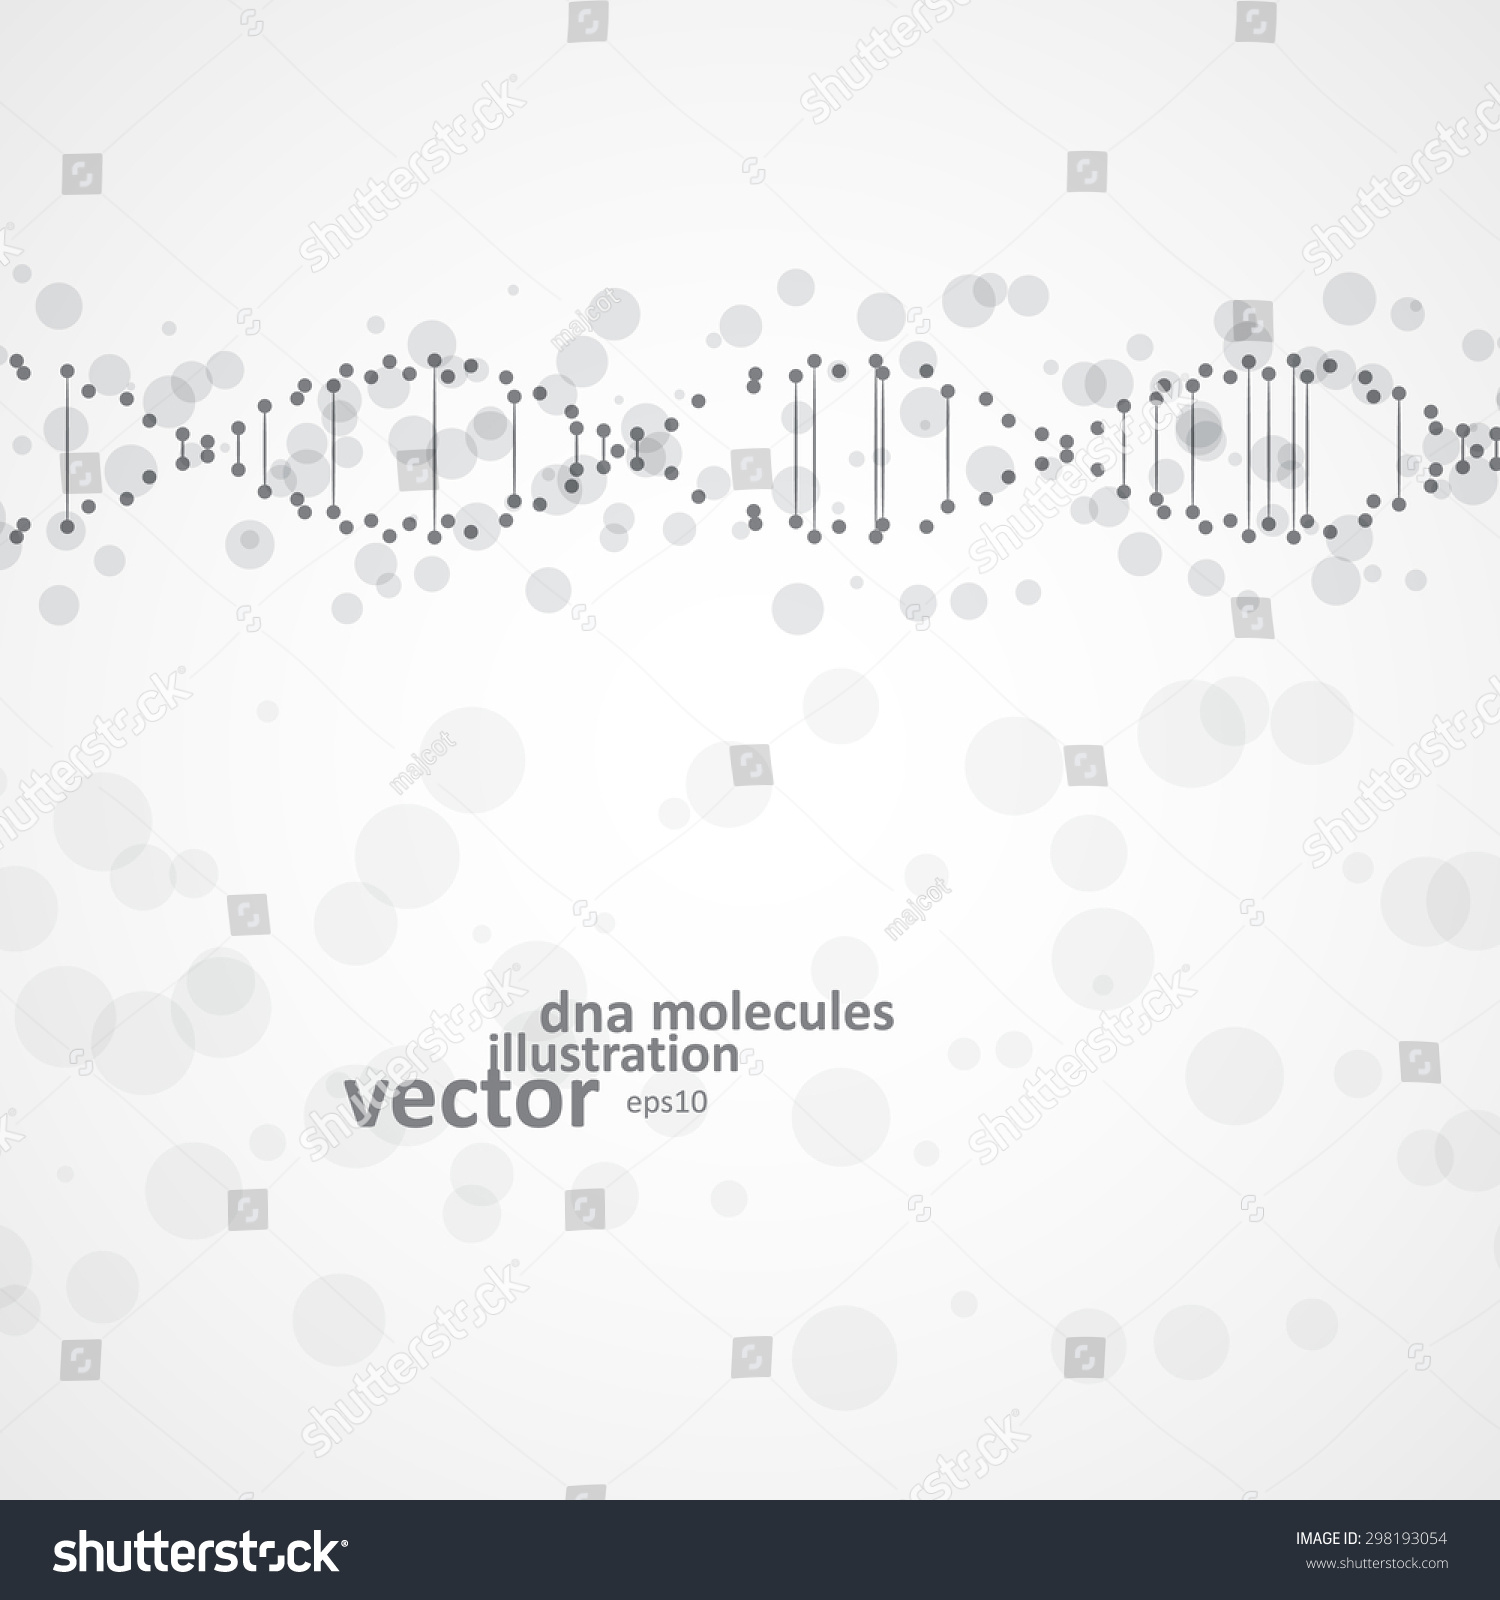 Abstract DNA futuristic molecule cell illustration eps10